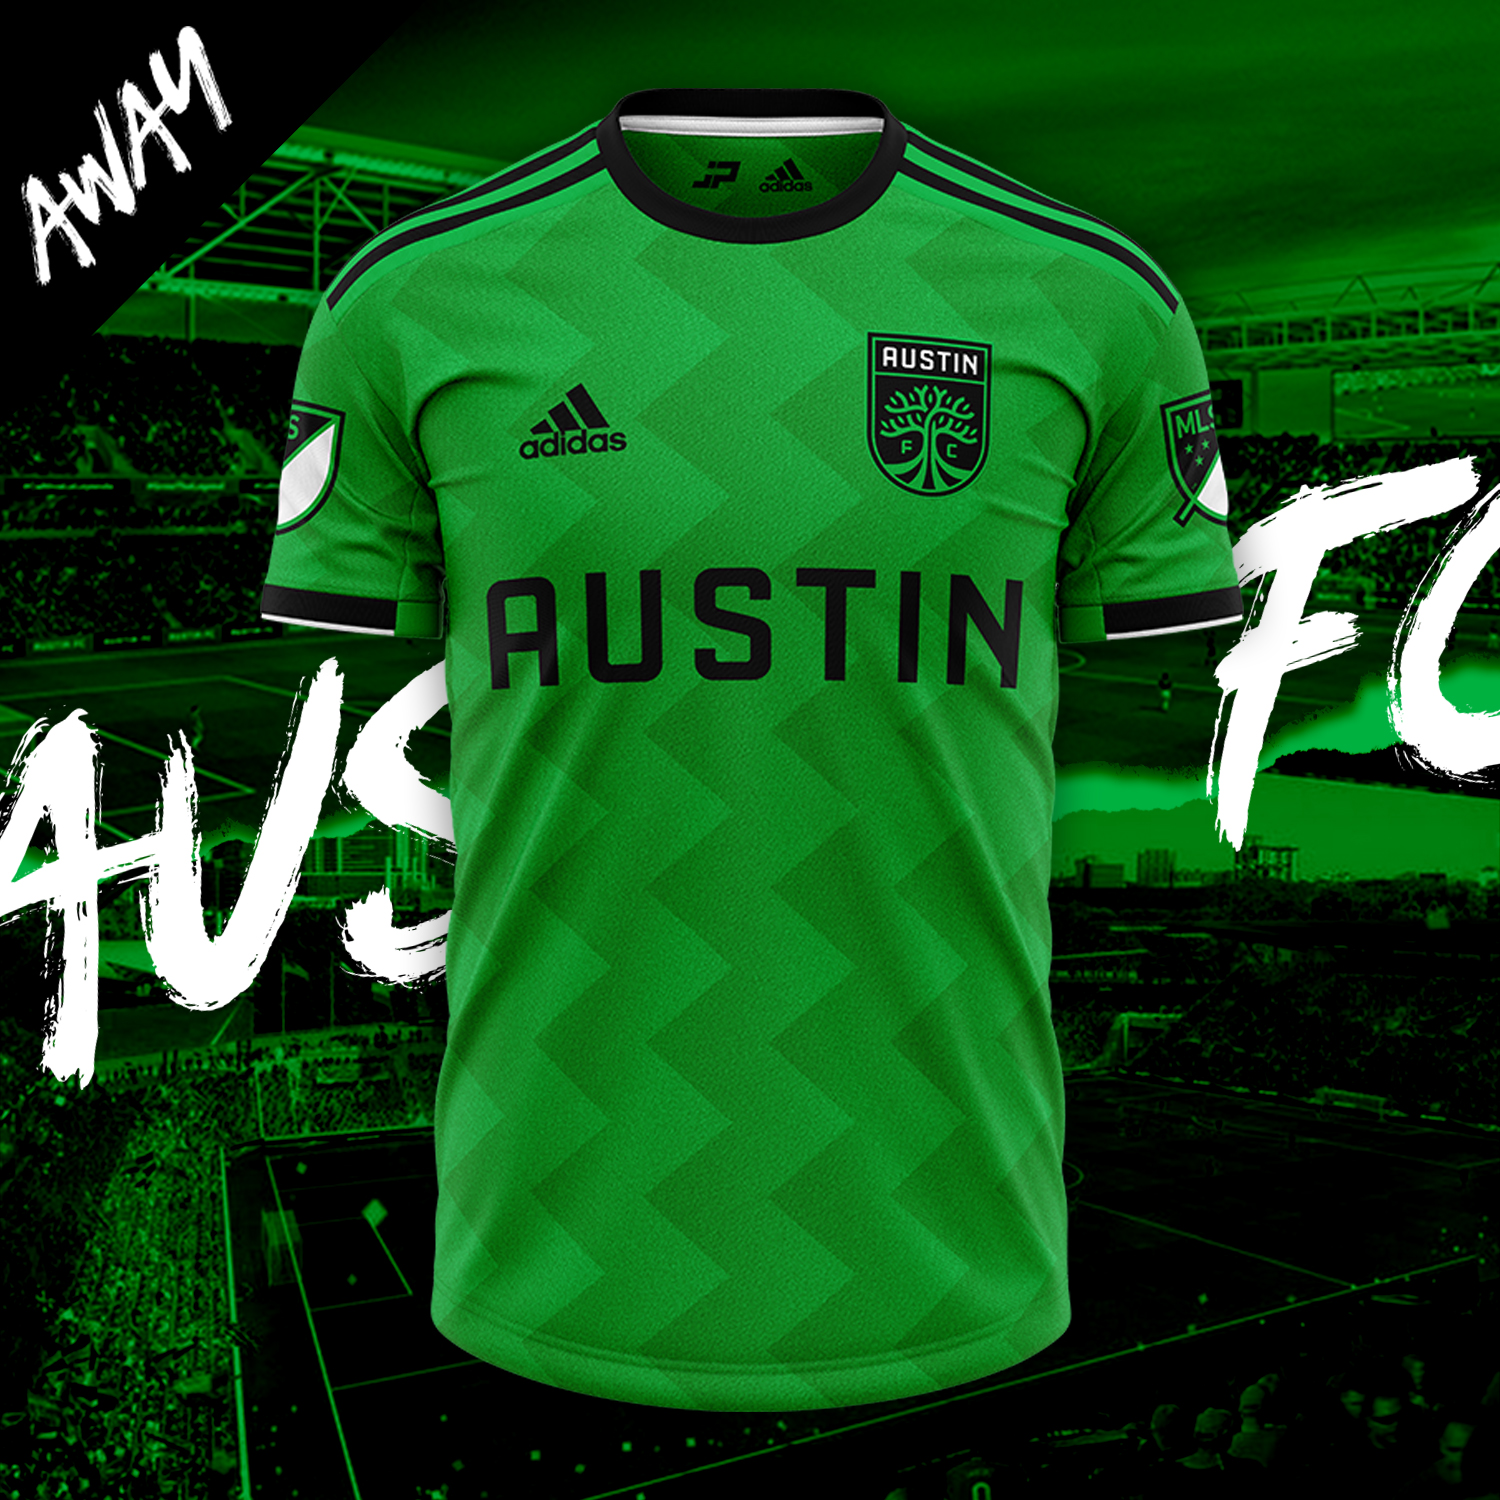 https://www.designfootball.com/images/joomgallery/originals/football_kits_120/austin_fc_away_concept_kit_20190917_1611507377.jpg